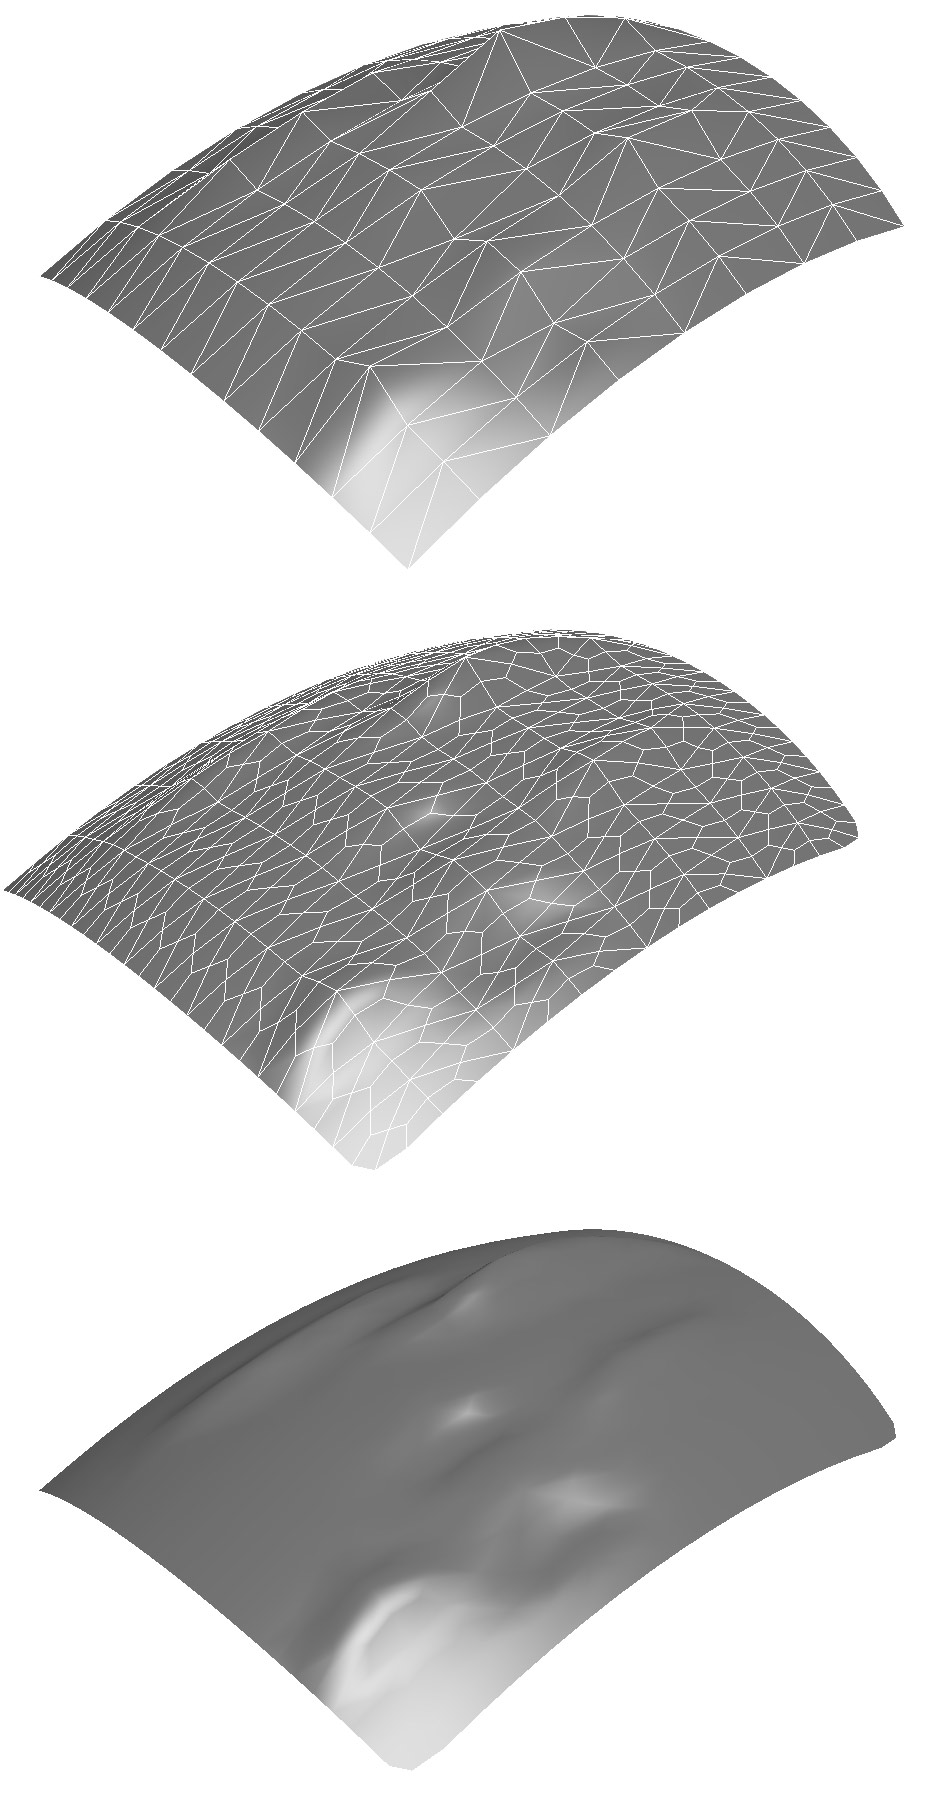 Subdividing triangulated Meshes.